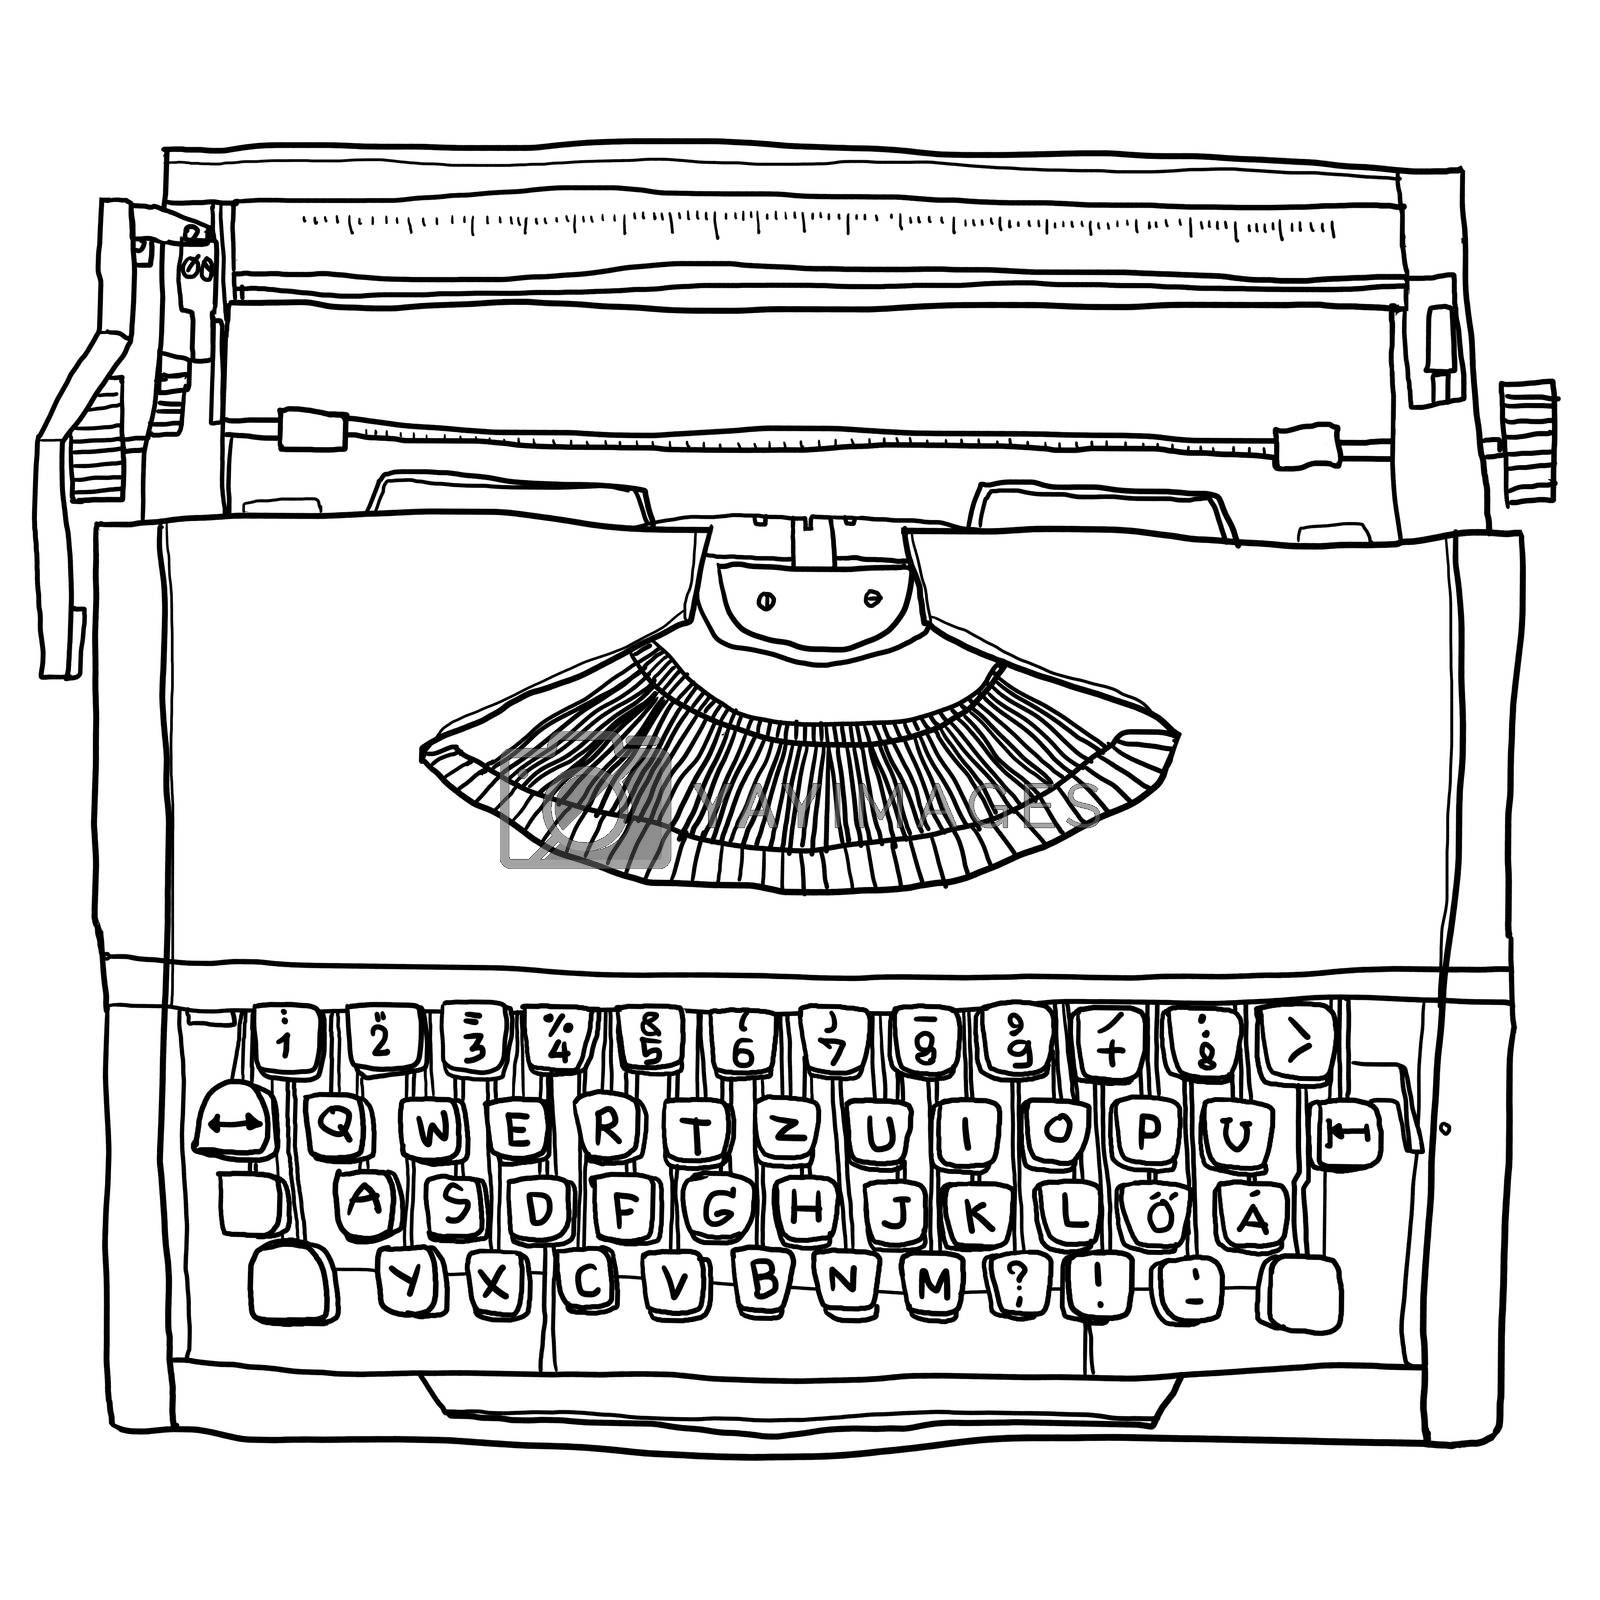 Orange Typewriter vintage  line art illustration